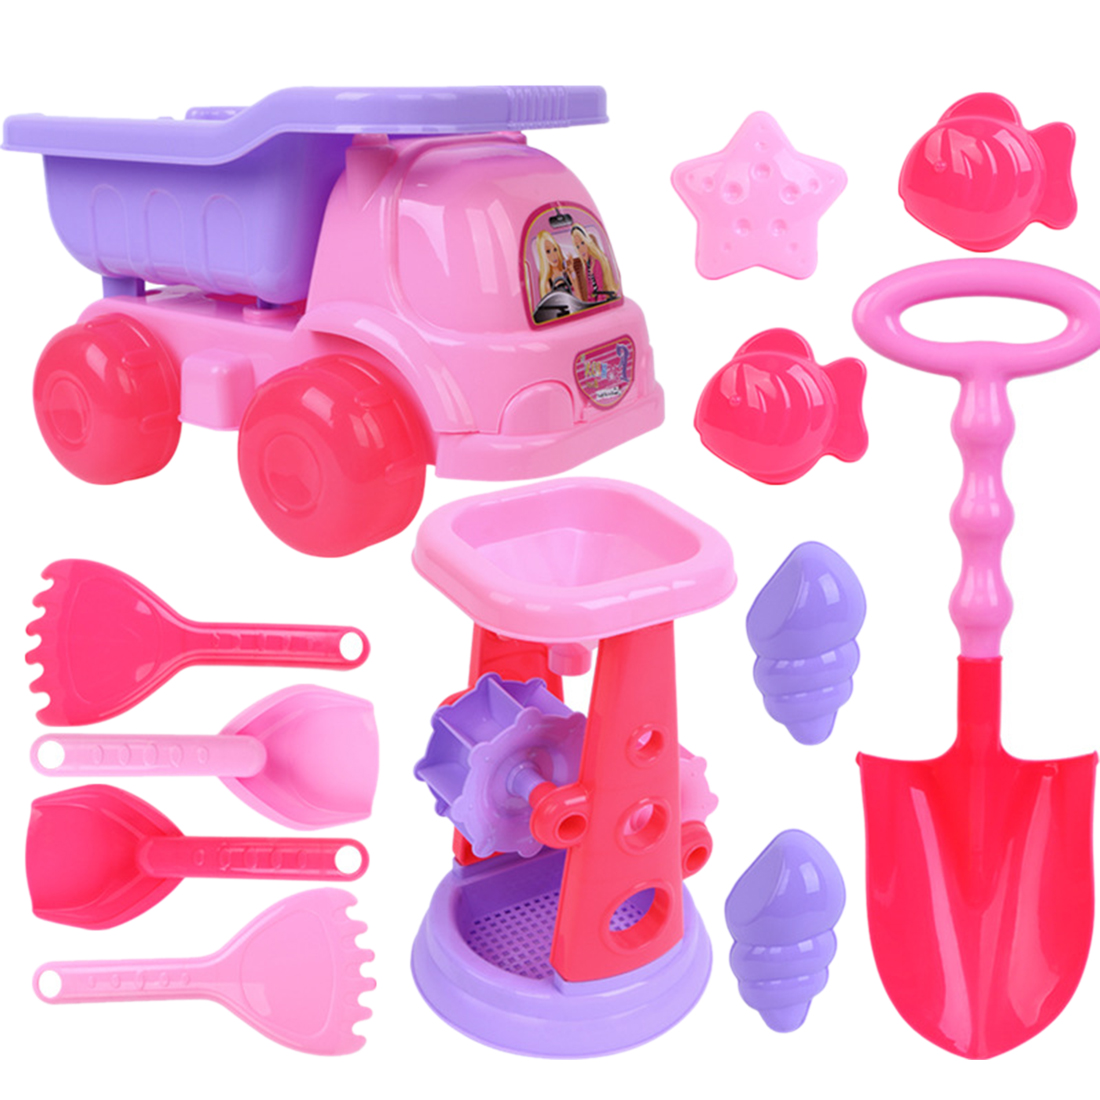 12Pcs Beach Toys Sand Play Set Educational Toy With Little Princess Beach Buggy For Children